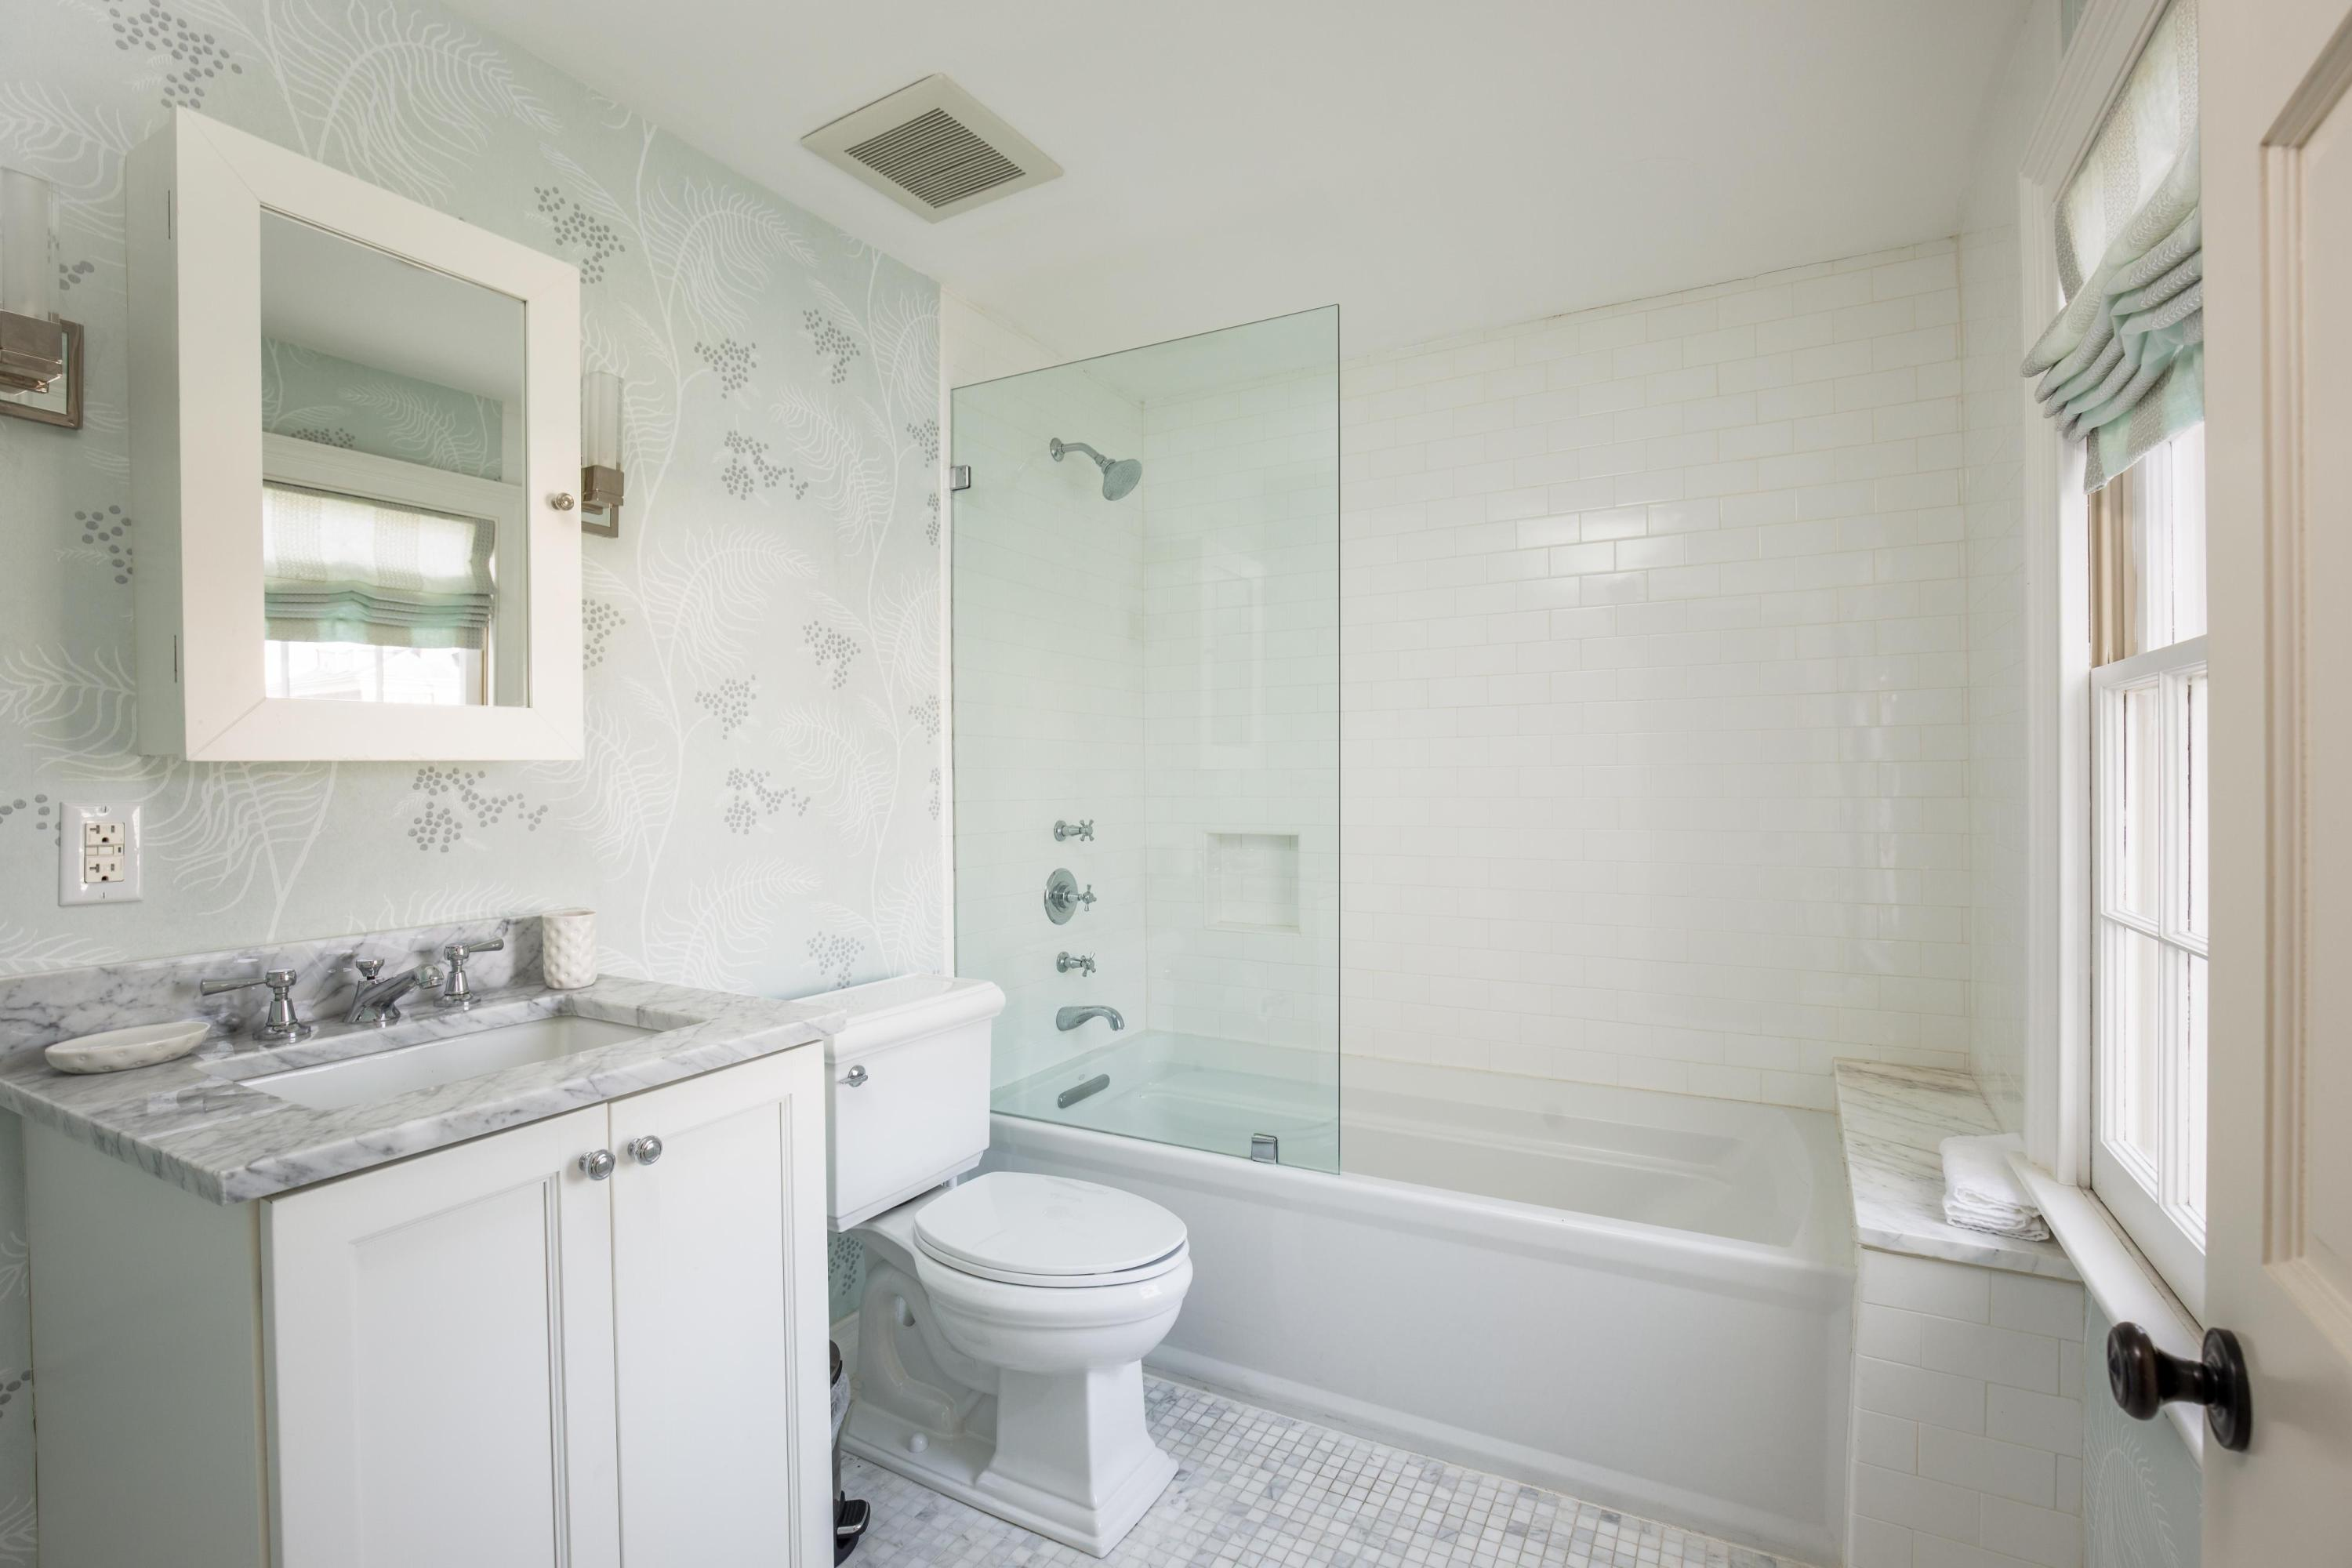 South of Broad Homes For Sale - 11 Church, Charleston, SC - 11